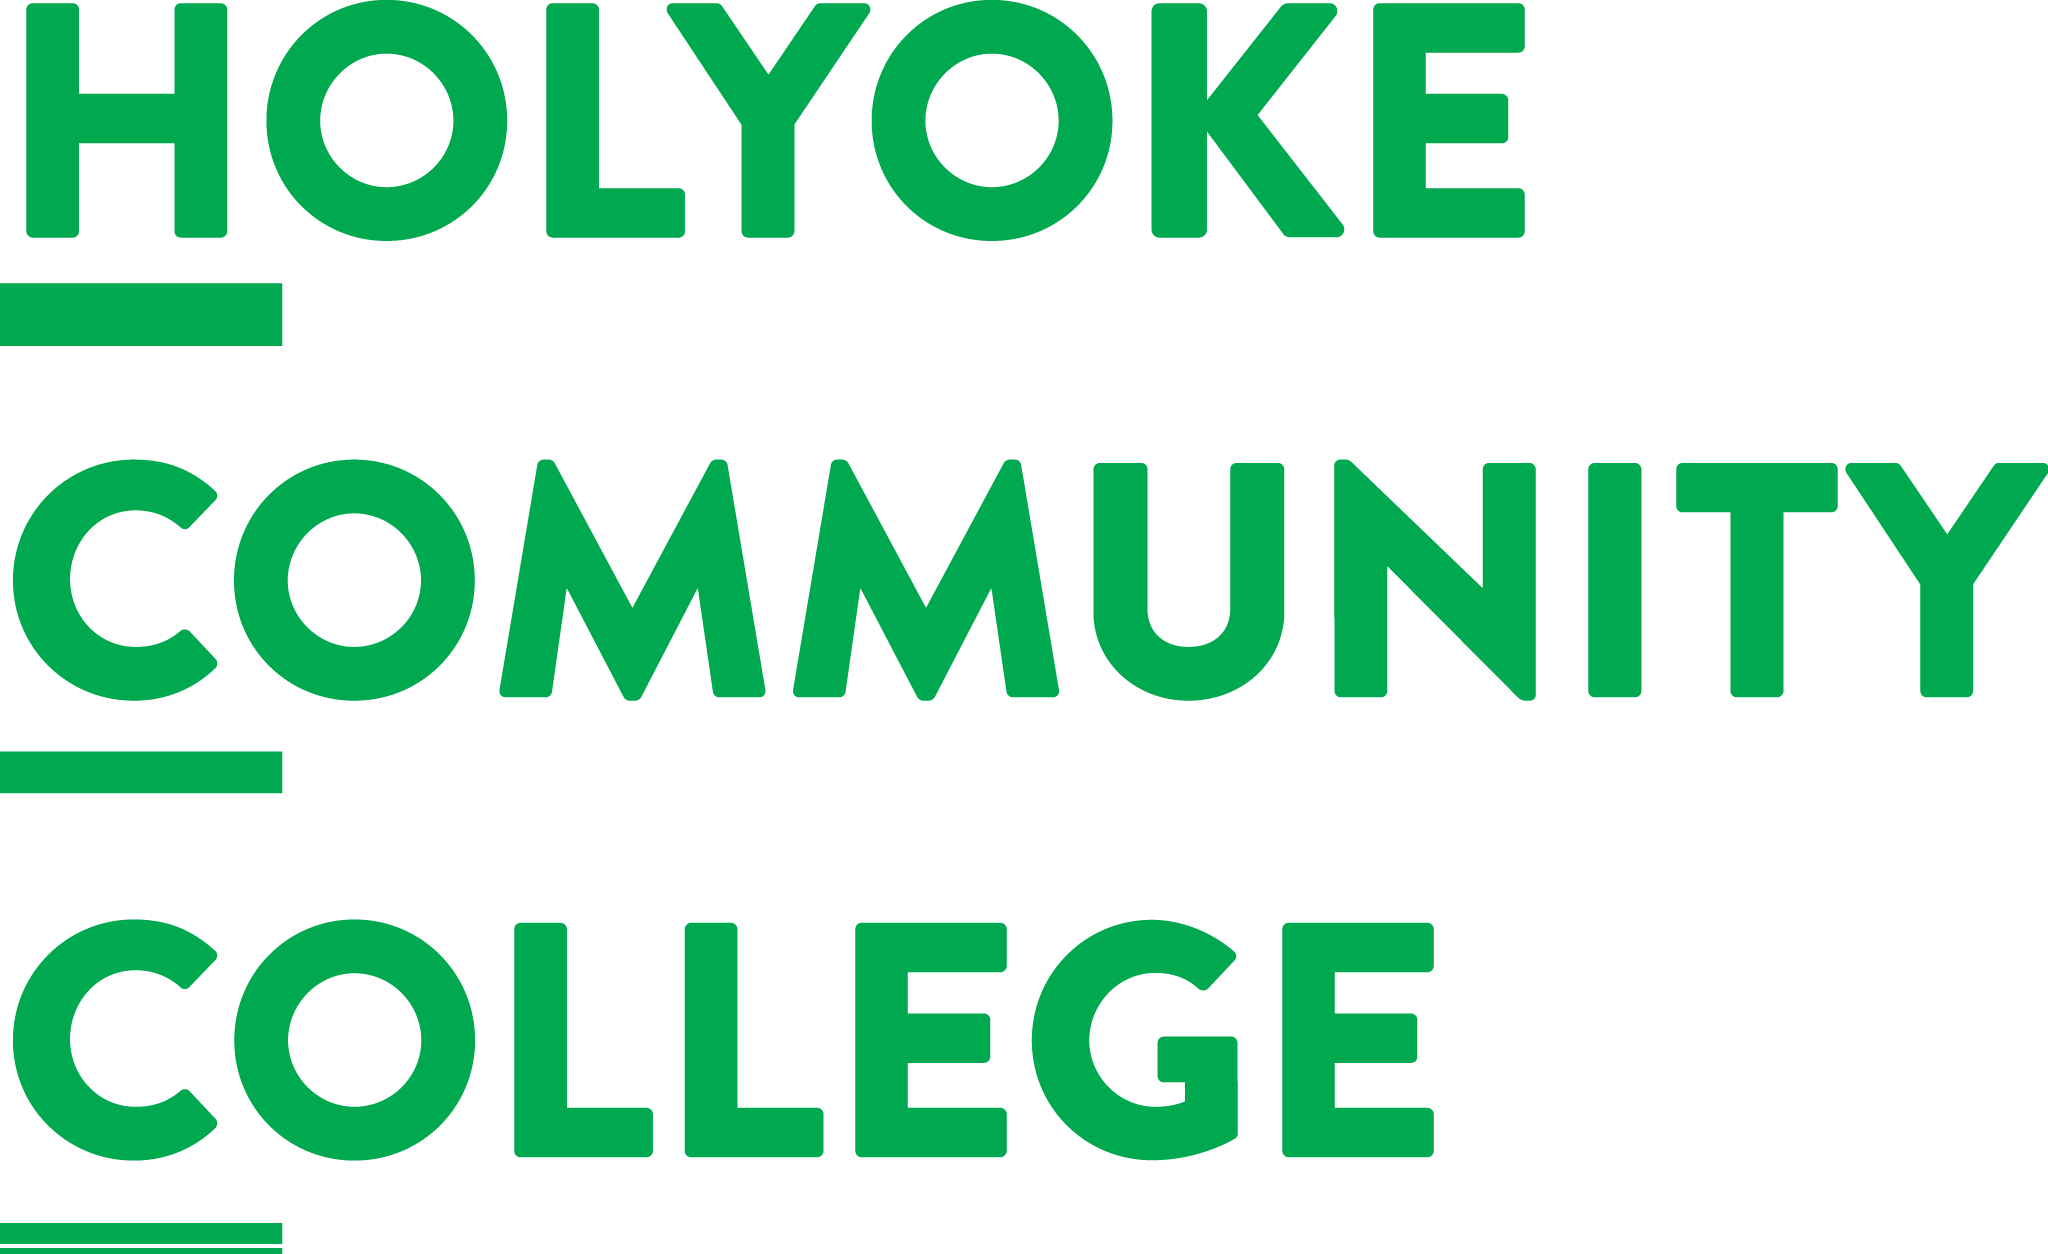 2048x1254 Holyoke Community College Holyoke Community College